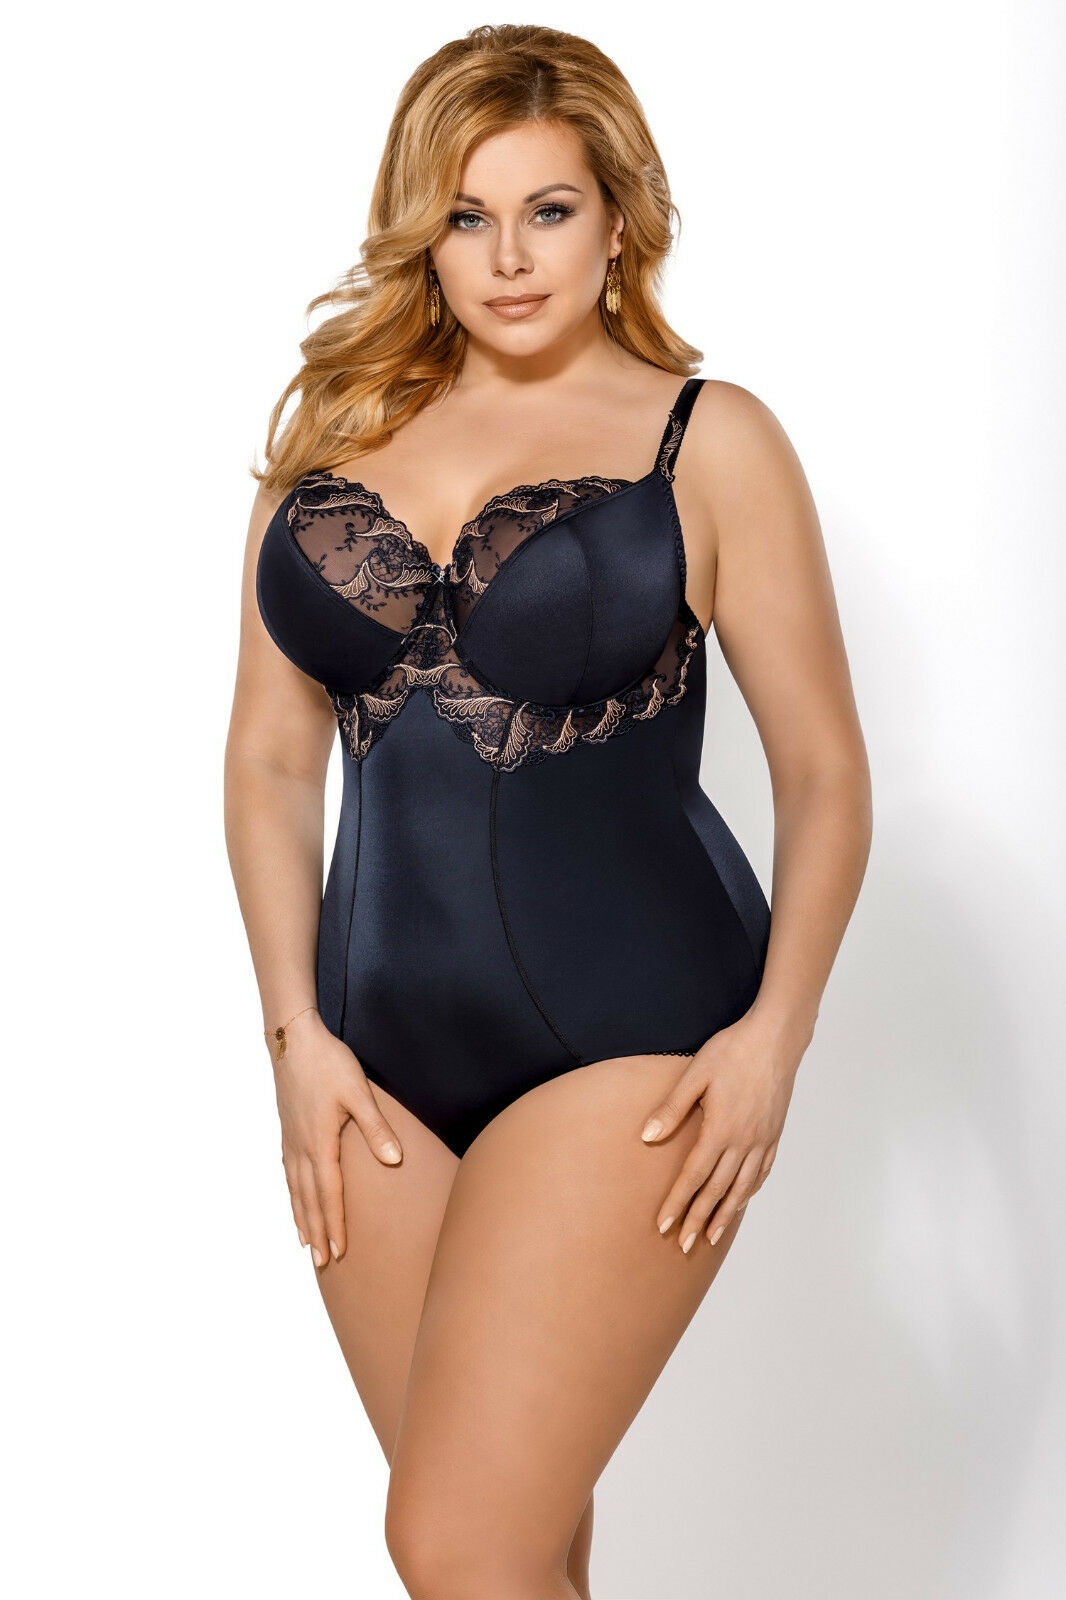 SALE  Bodyshaper Bodysuit Slimming Shaping Soft CUPS SIZE 34 36 38 C D E F G H